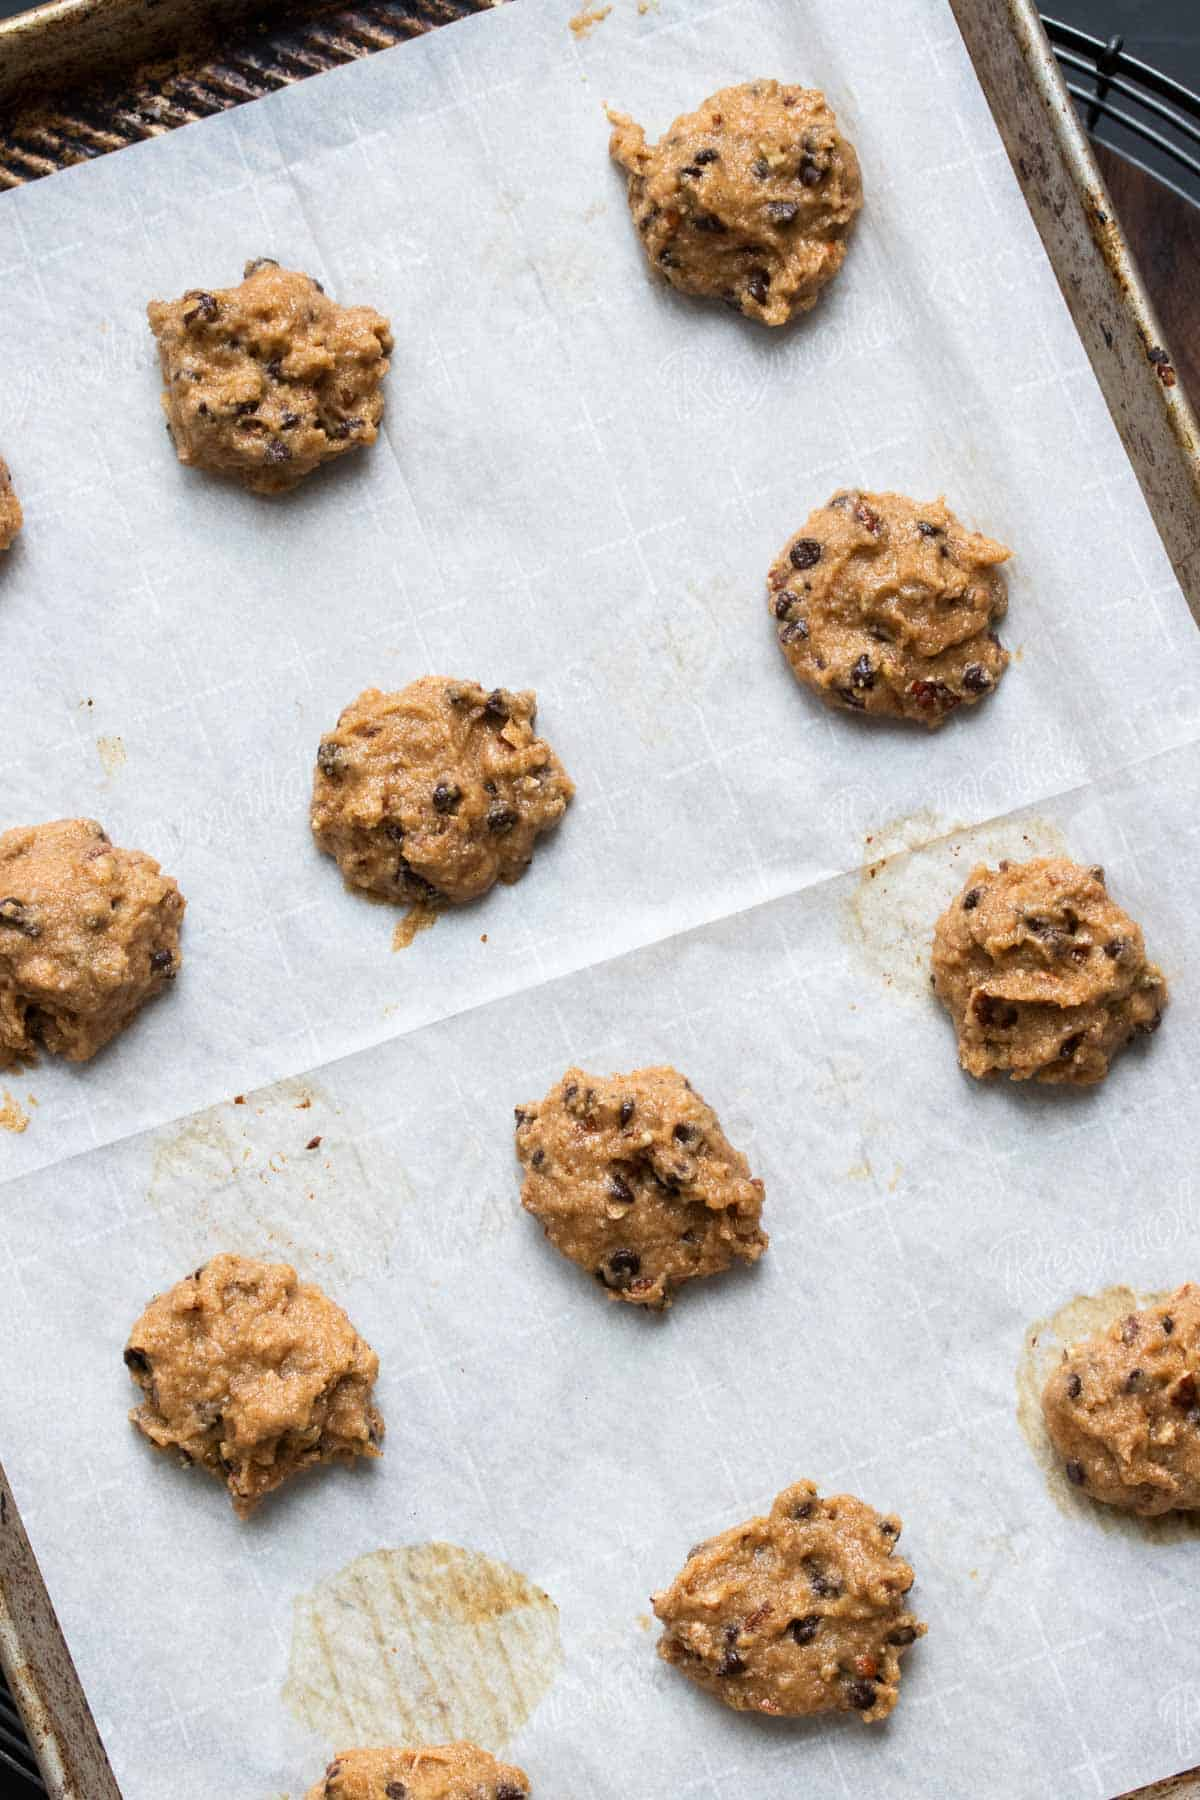 Drops of cookie dough on a parchment lined baking sheet